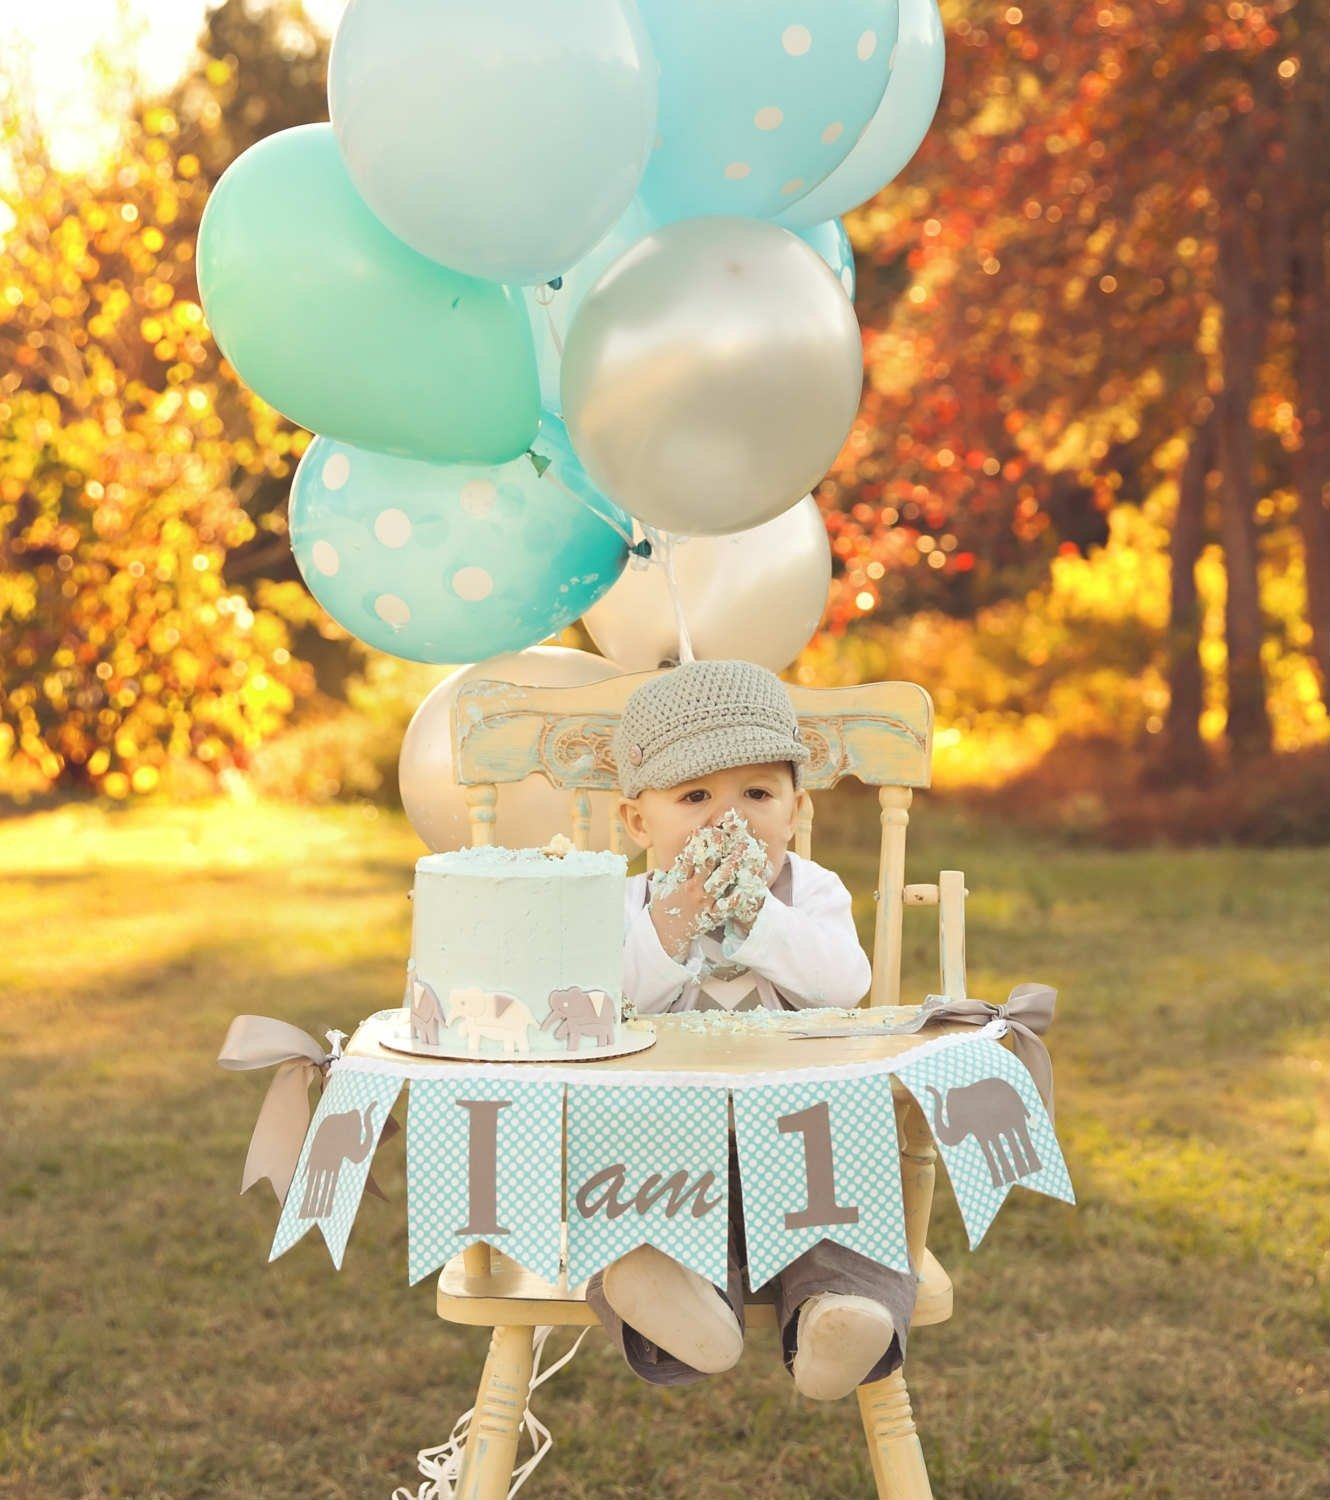 10 Fashionable 1St Boy Birthday Party Ideas first birthday the time to celebrate is here 2020